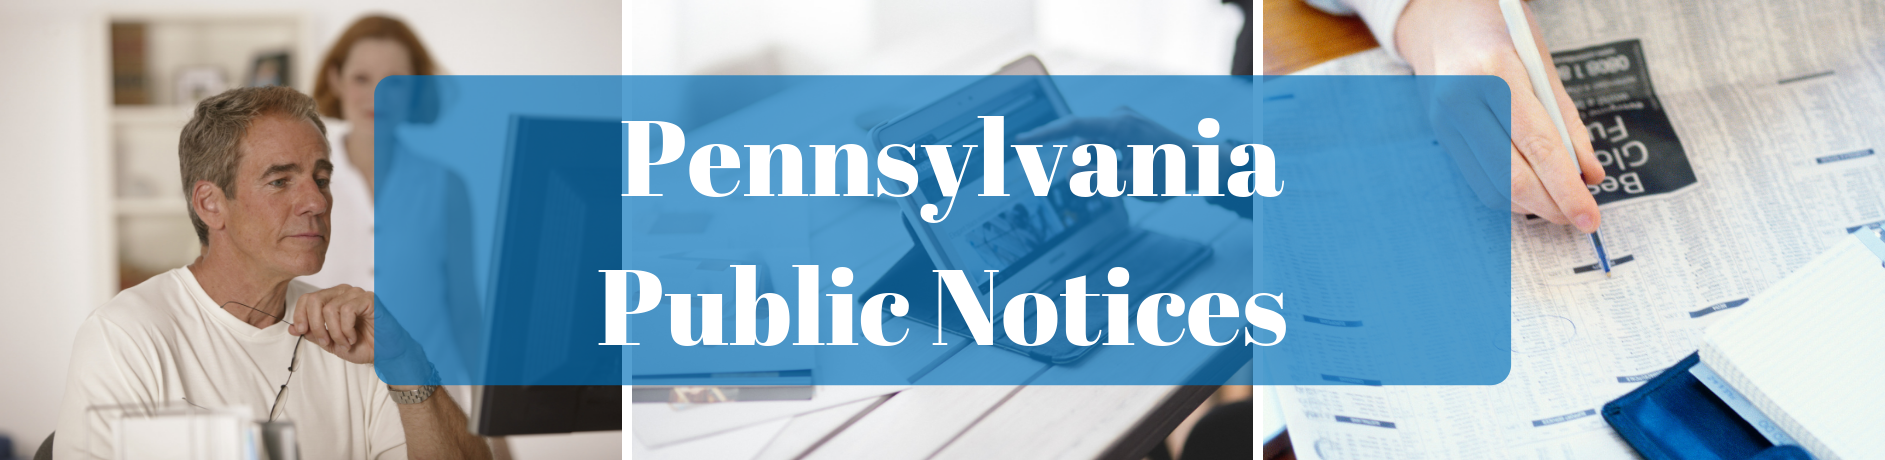 Public Notices in Pennsylvania